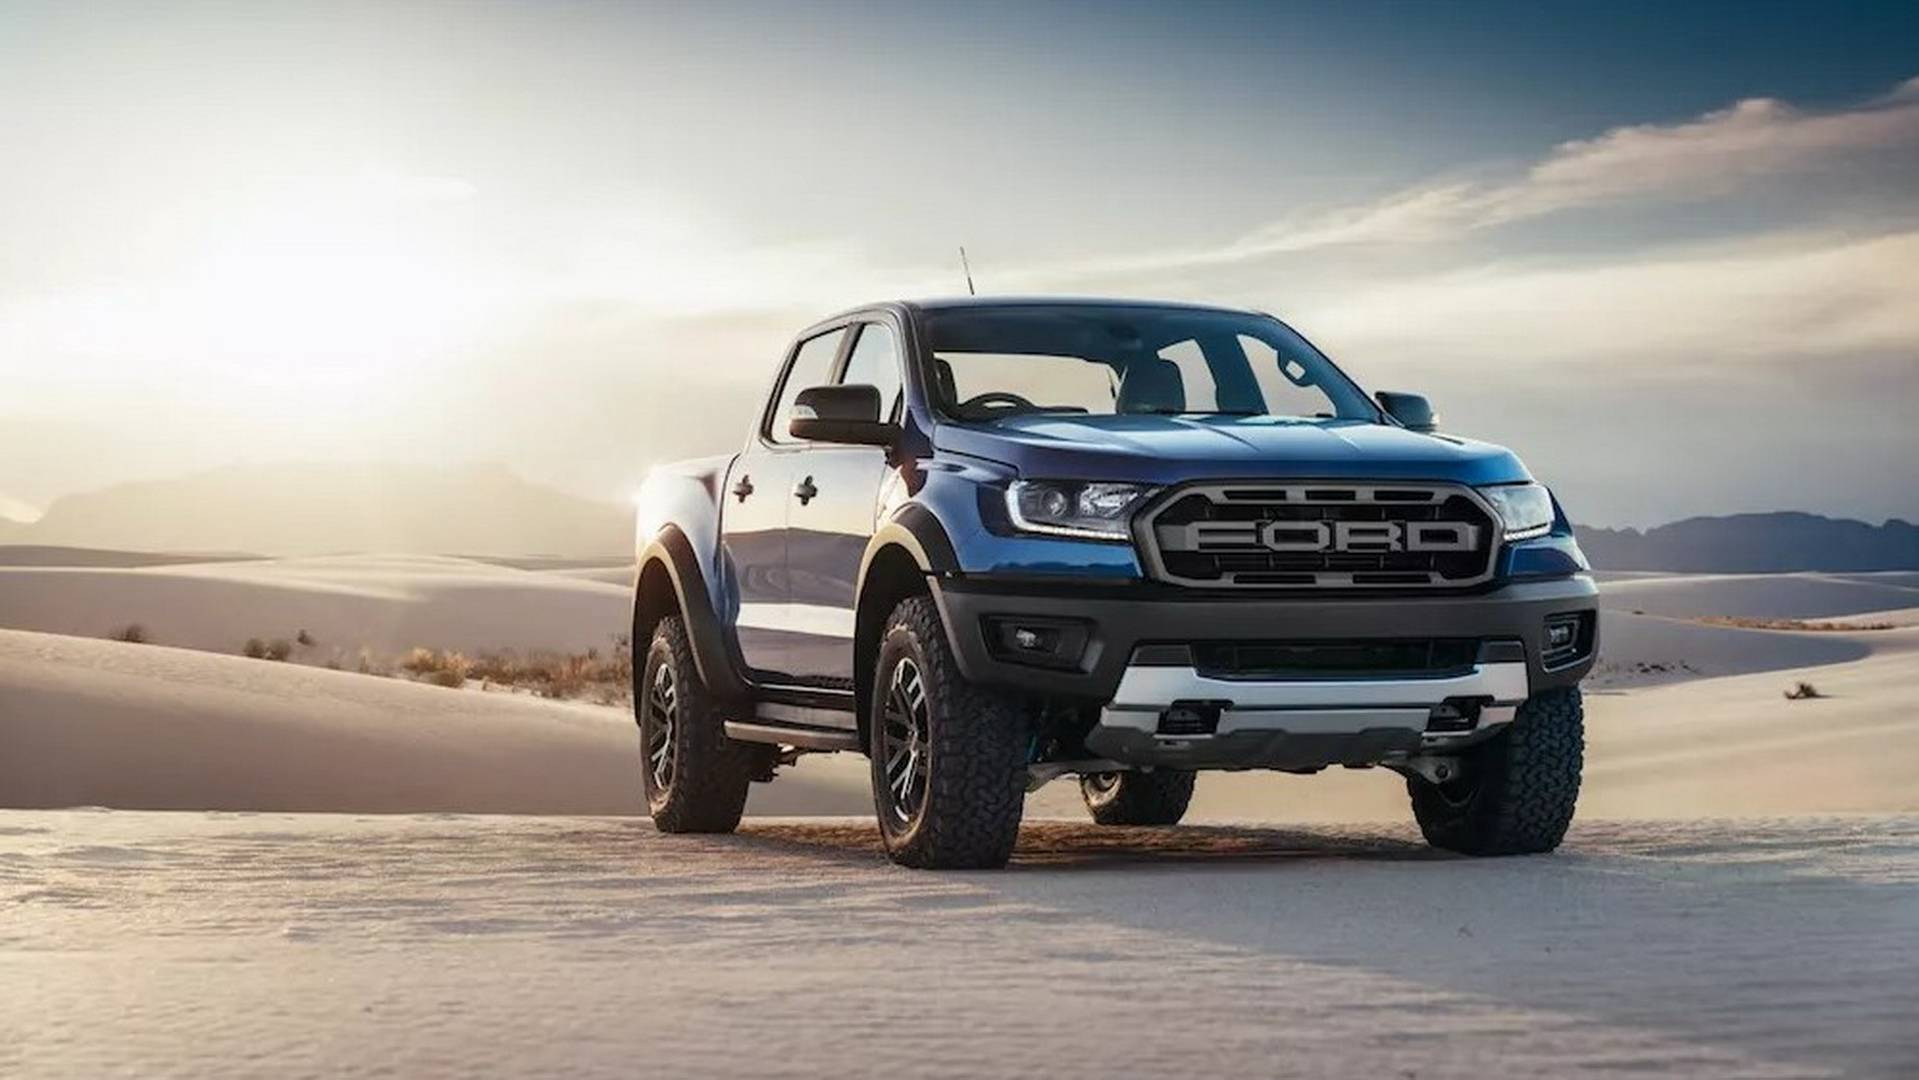 2019 Ford Ranger Raptor Makes Brief Online Debut Looking Mean and Sexy - autoevolution